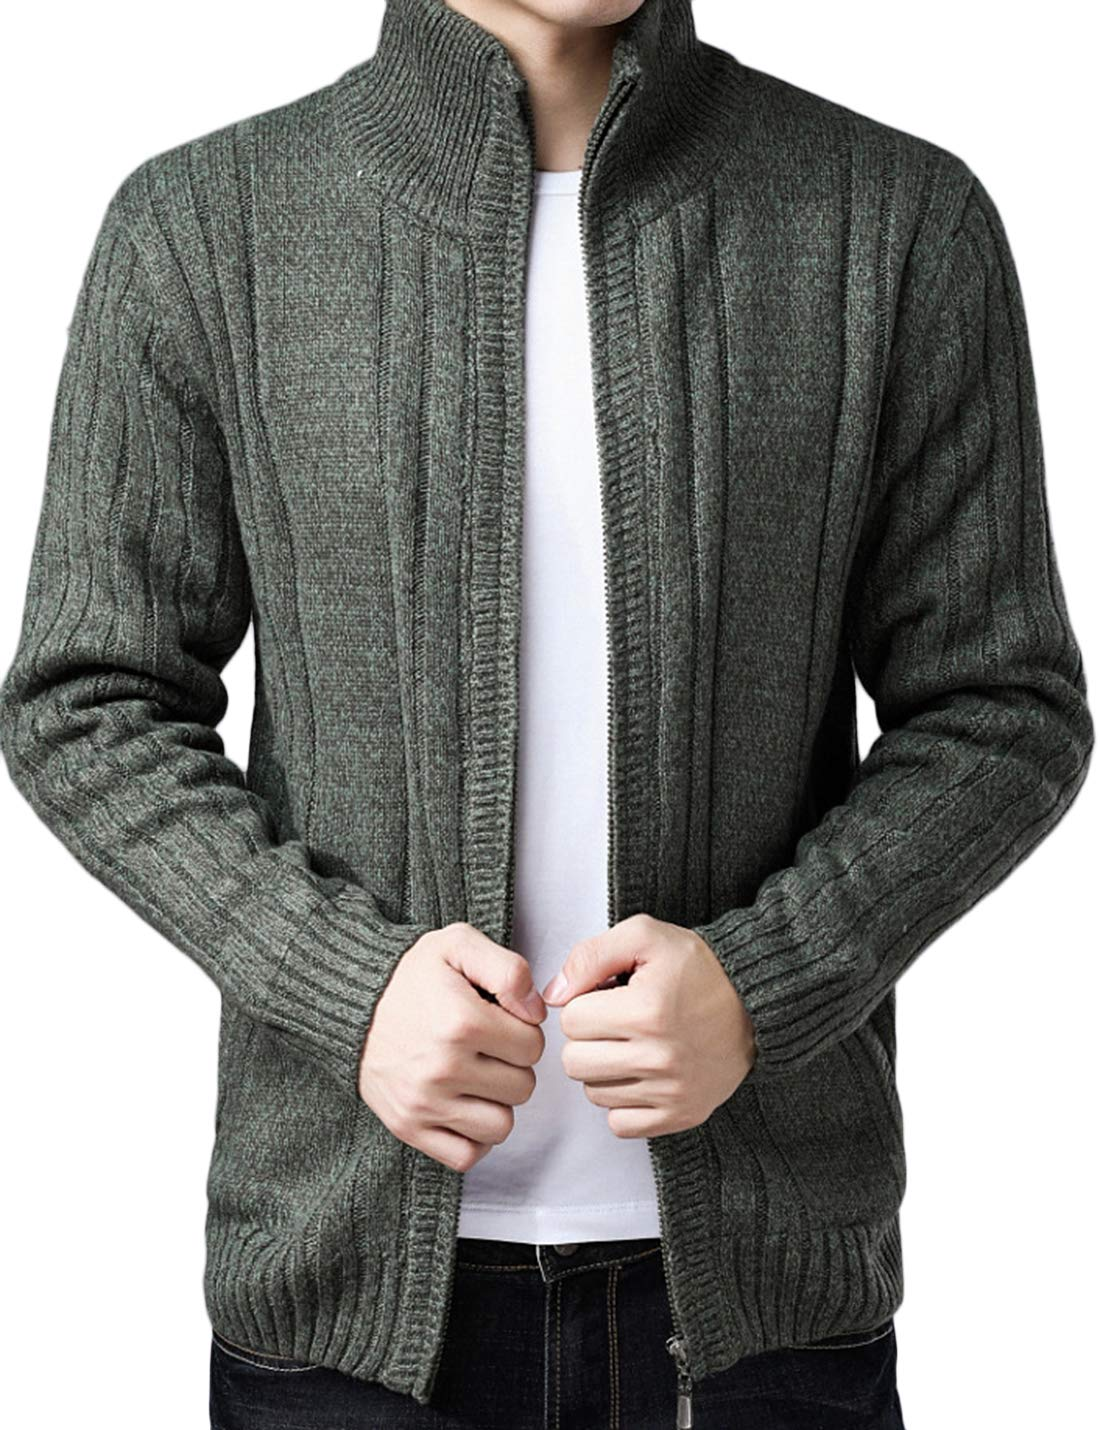 Lentta Mens Slim Fit Solid Stand Collar Full Zip Up Sherpa Lined Cardigan Sweater (X-Small, Army Green)